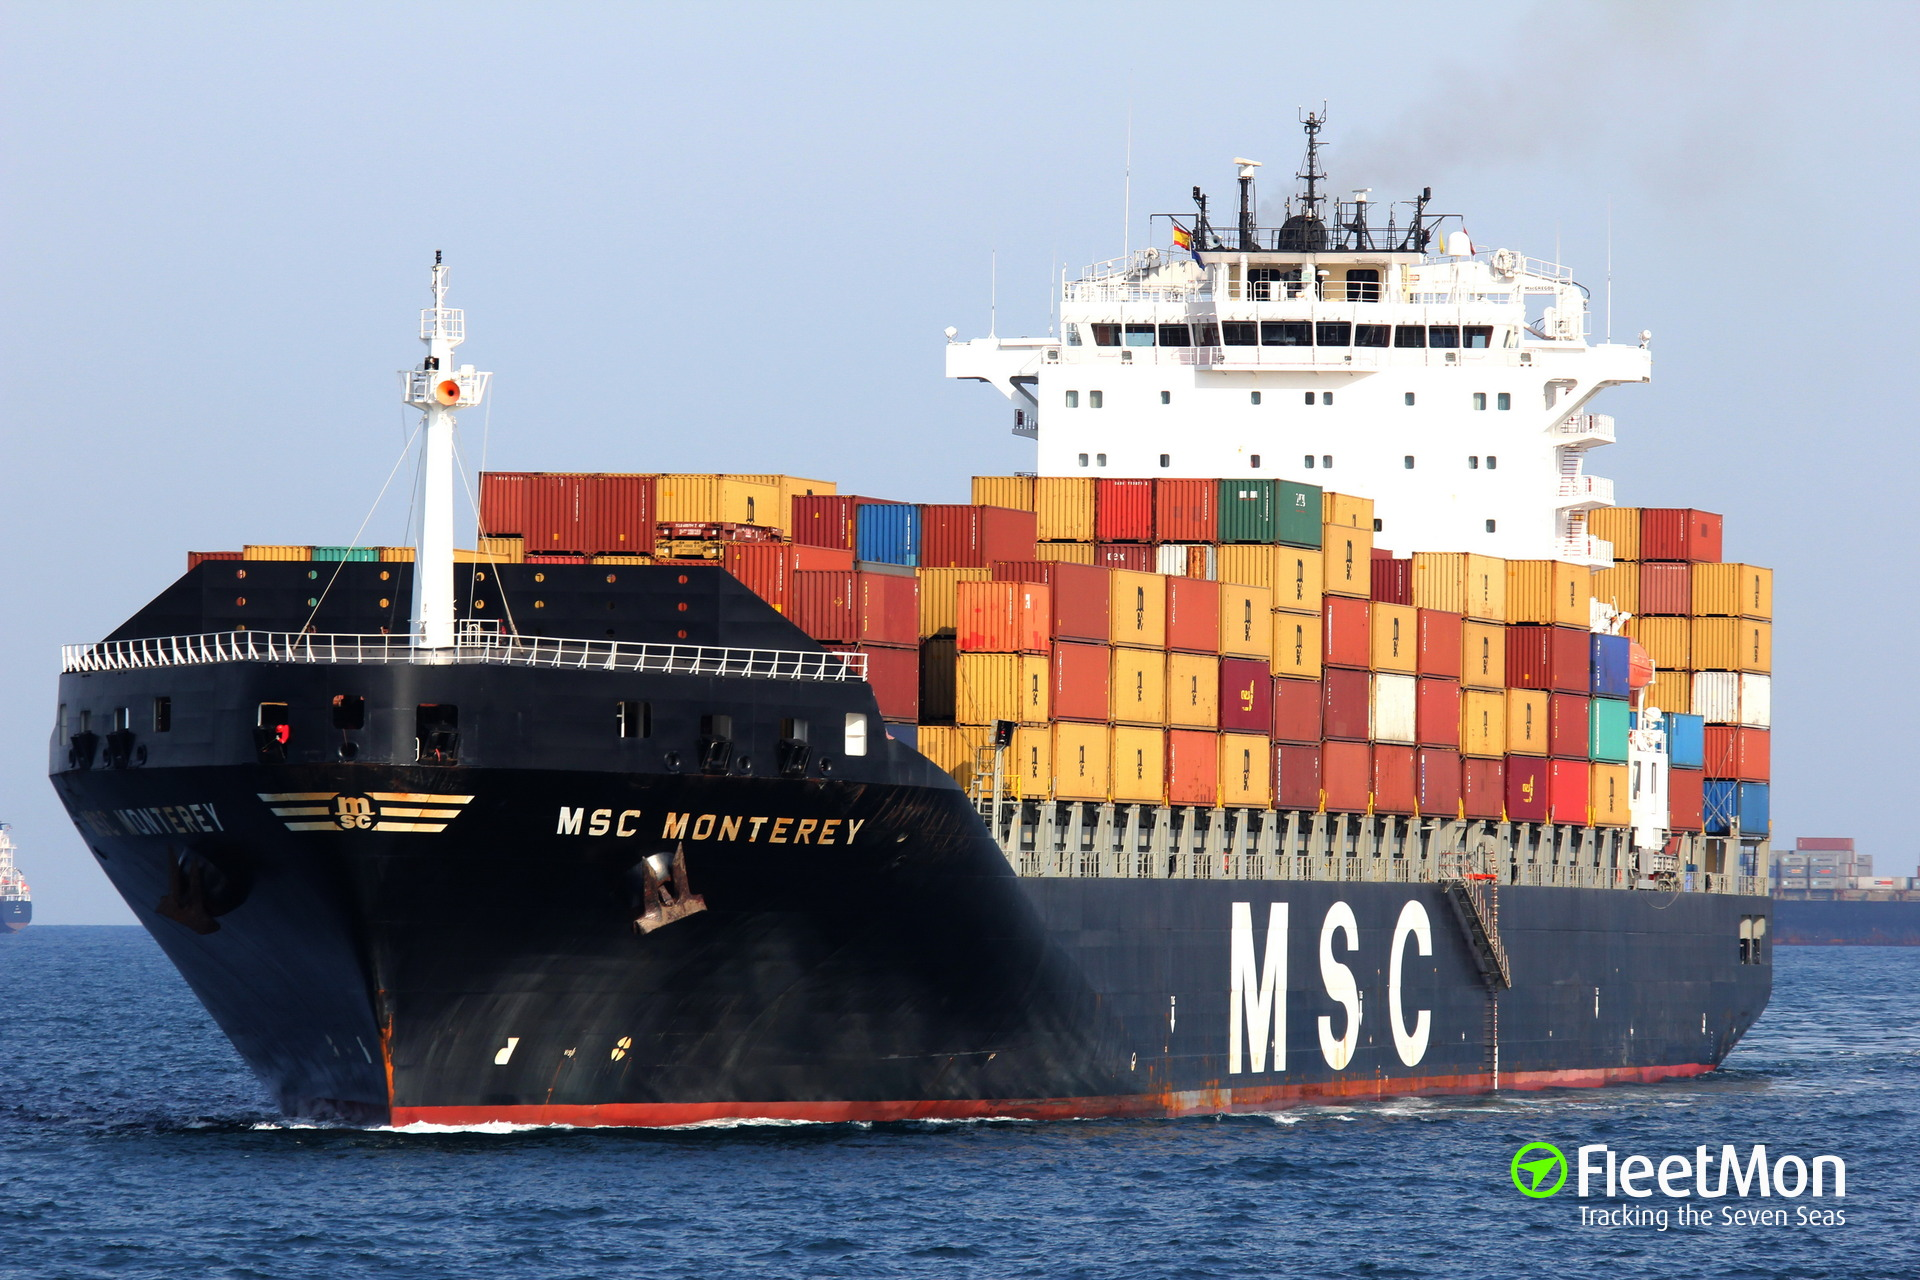 MSC Monterey in trouble in North Atlantic with presumably, cracks in hull